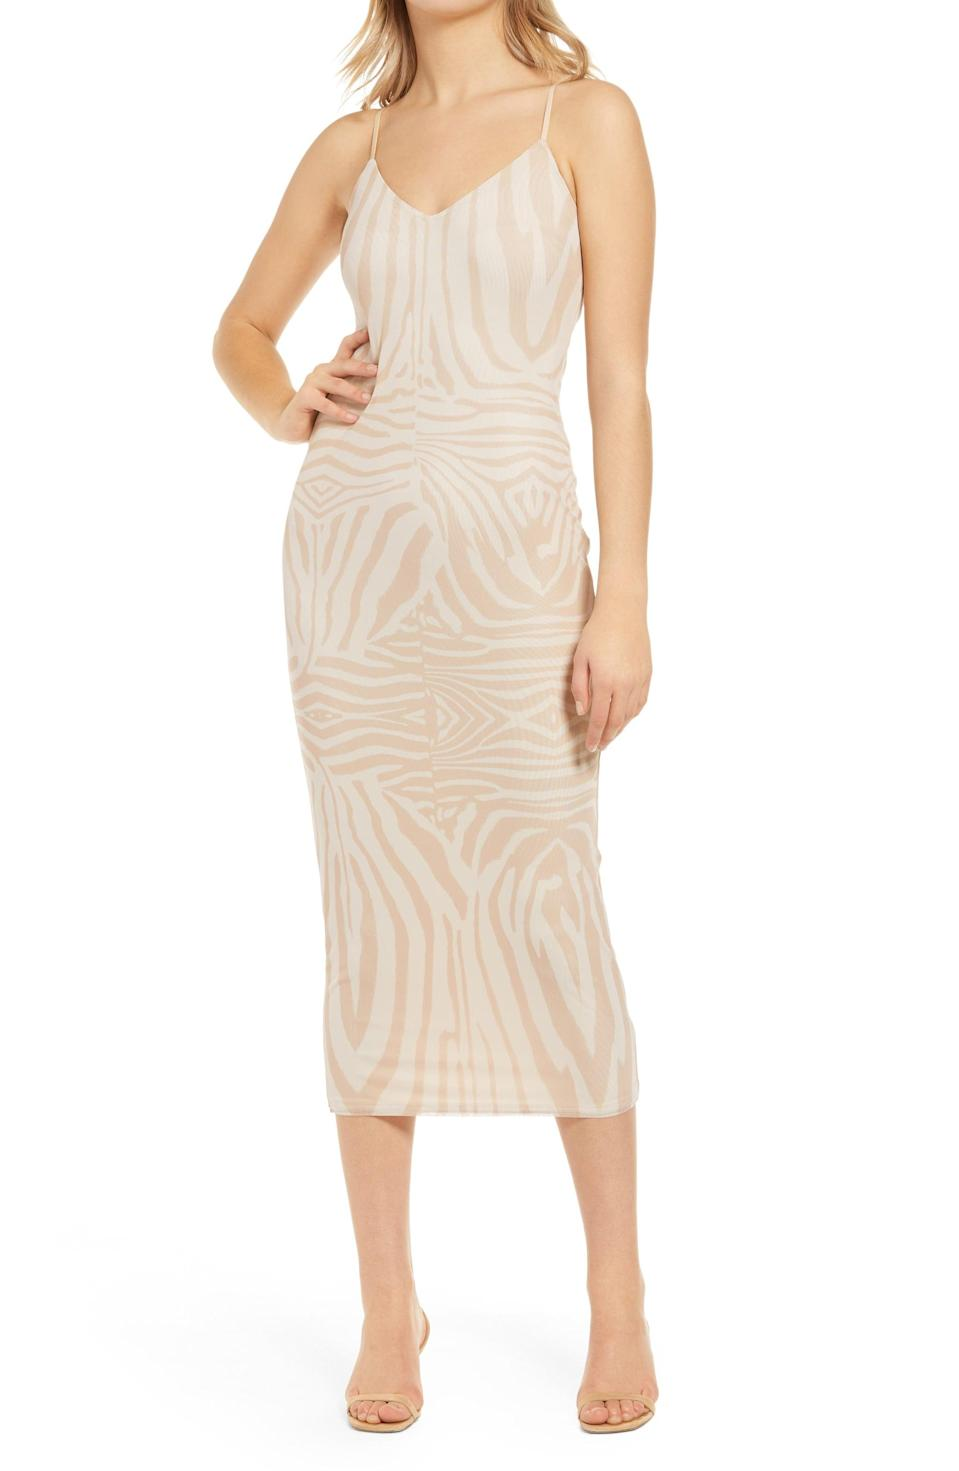 <p>This <span>AFRM Amina Sleeveless Midi Dress</span> ($78) features a vibrant print and a summery silhouette for the perfect day-to-night look.</p>